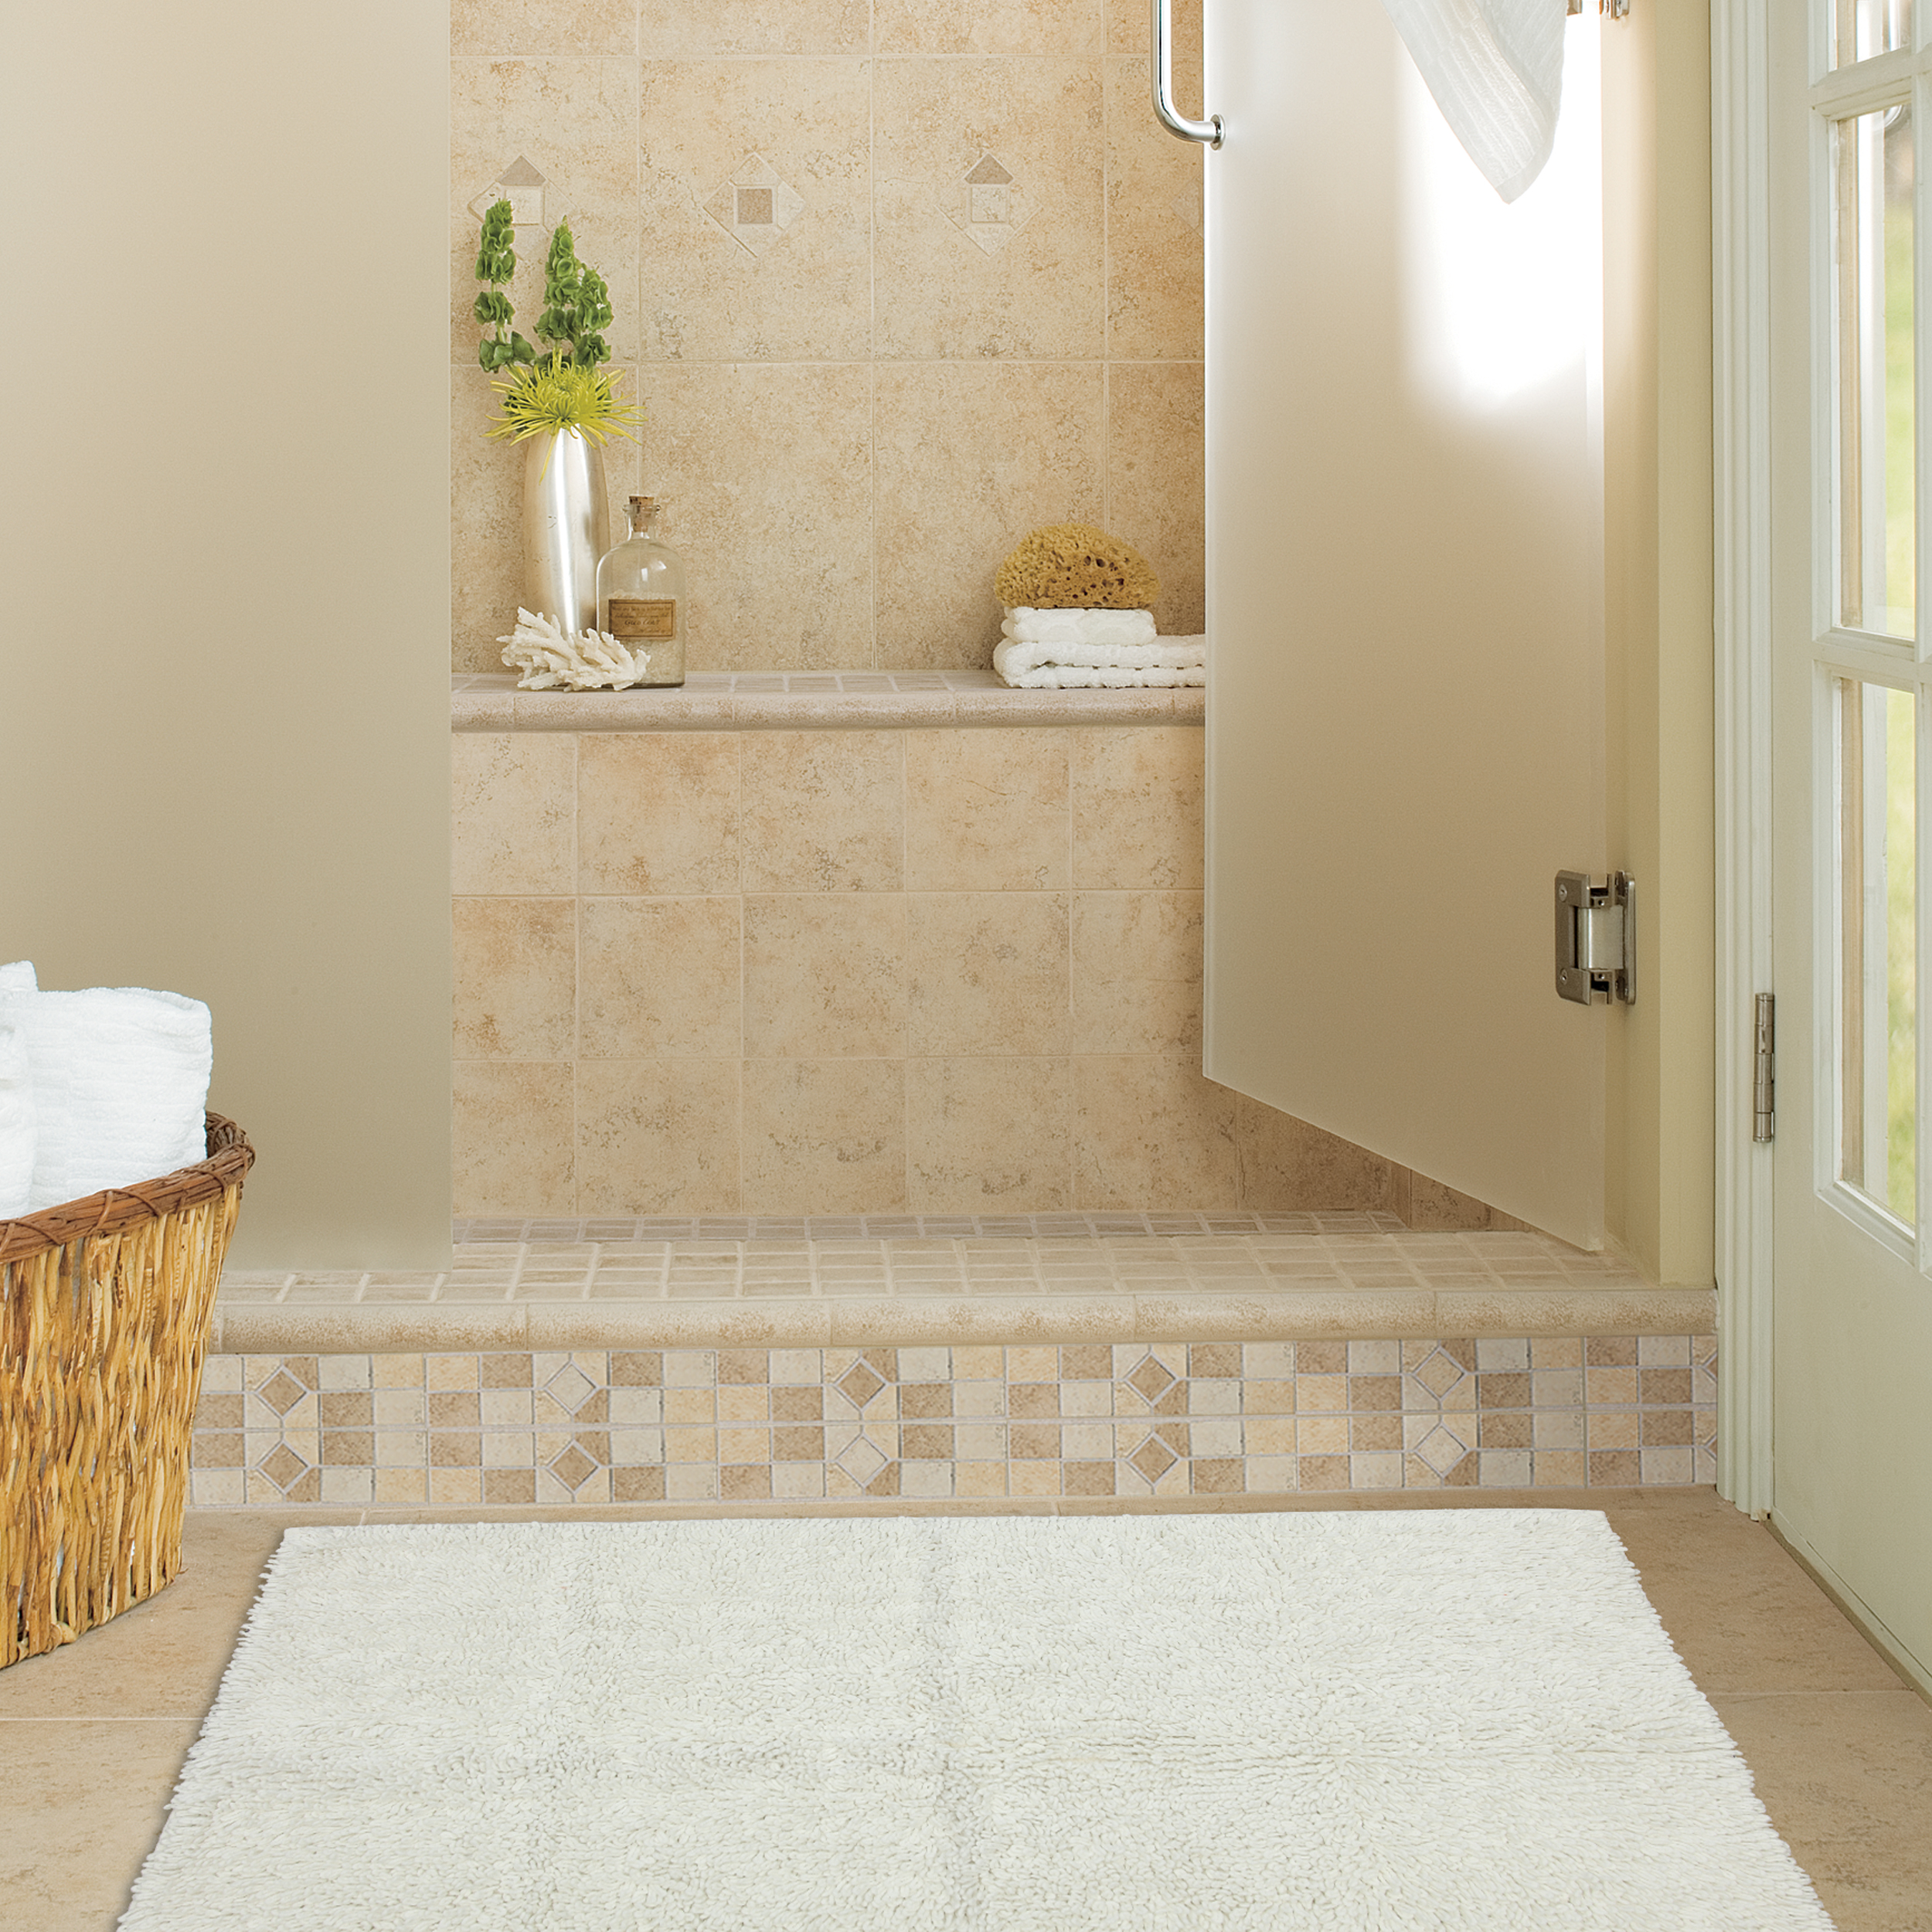 A Bathroom Rug to Warm Up the Room | Mohawk Homescapes